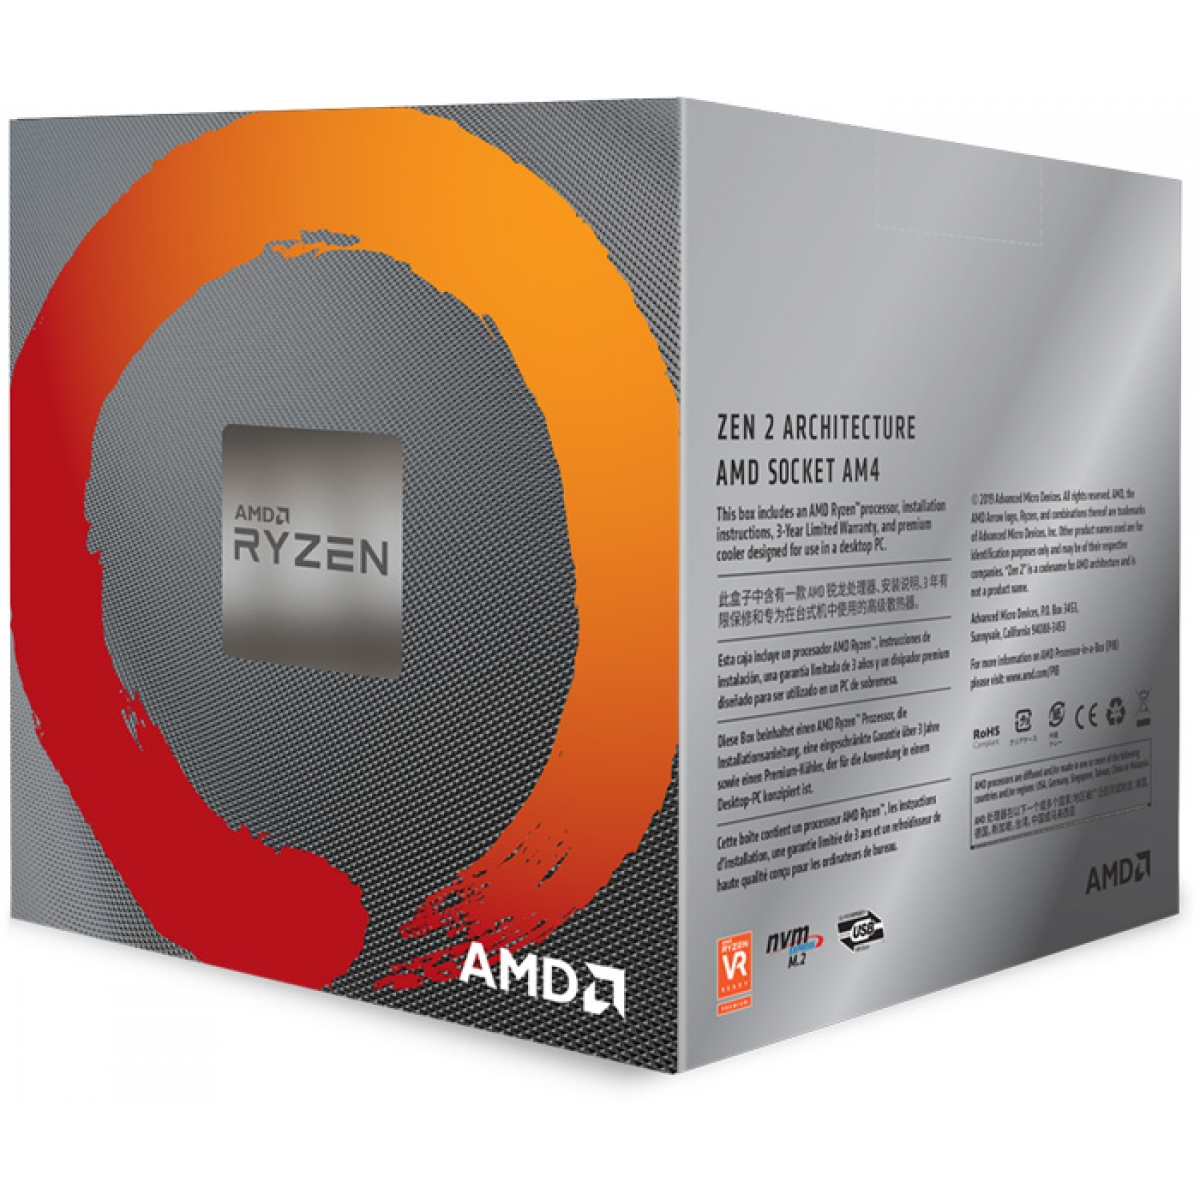 Processador AMD Ryzen 7 3800X 3.9ghz (4.5ghz Turbo), 8-cores 16-threads, Cooler Wraith Prism RGB, AM4, 100-100000025BOX, S/ Video